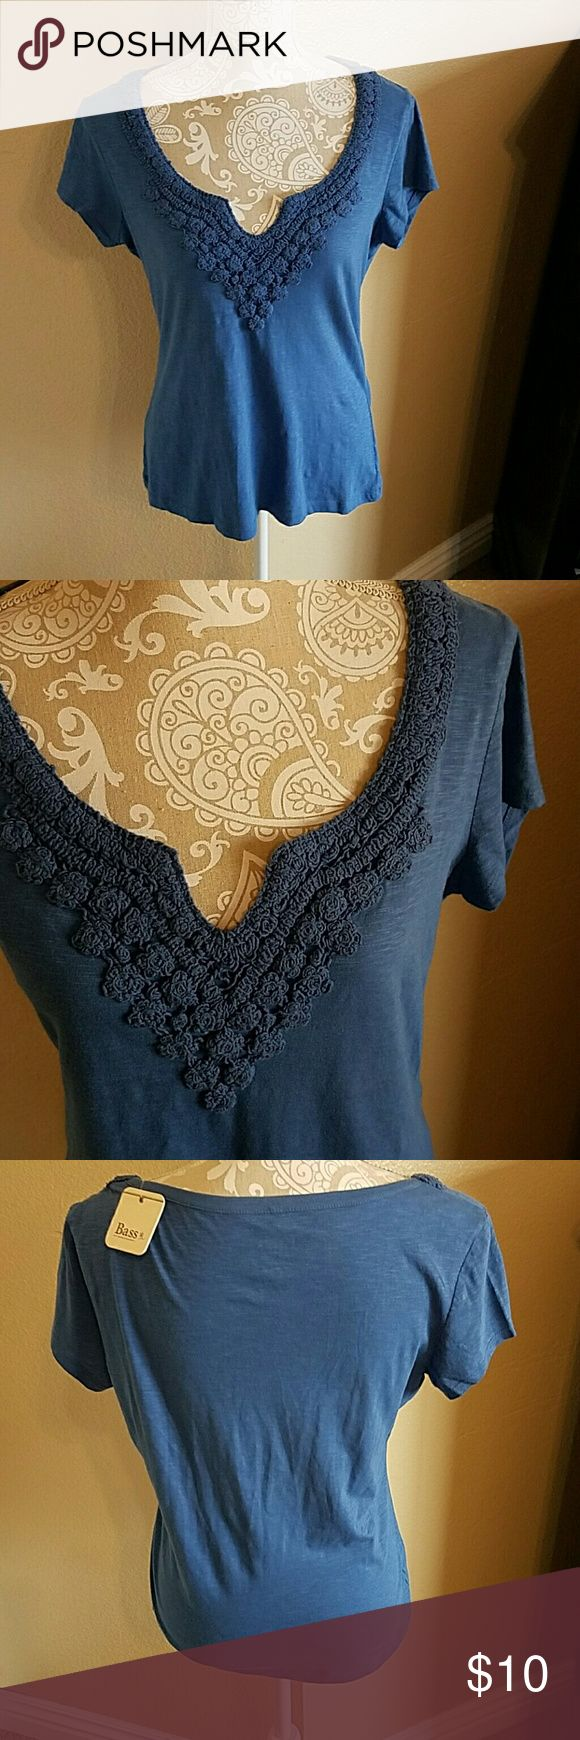 Bass Cornflower Blue V Neck Top sz M NWT NWT Beautiful Cornflower Blue Bass V Neck Top with a Pretty Crochet Detail Neckline. 100% Cotton soft and  comfy. The 4th photo is truest to color. Definitely  photographs darker than it really is. Bass Tops Tees - Short Sleeve